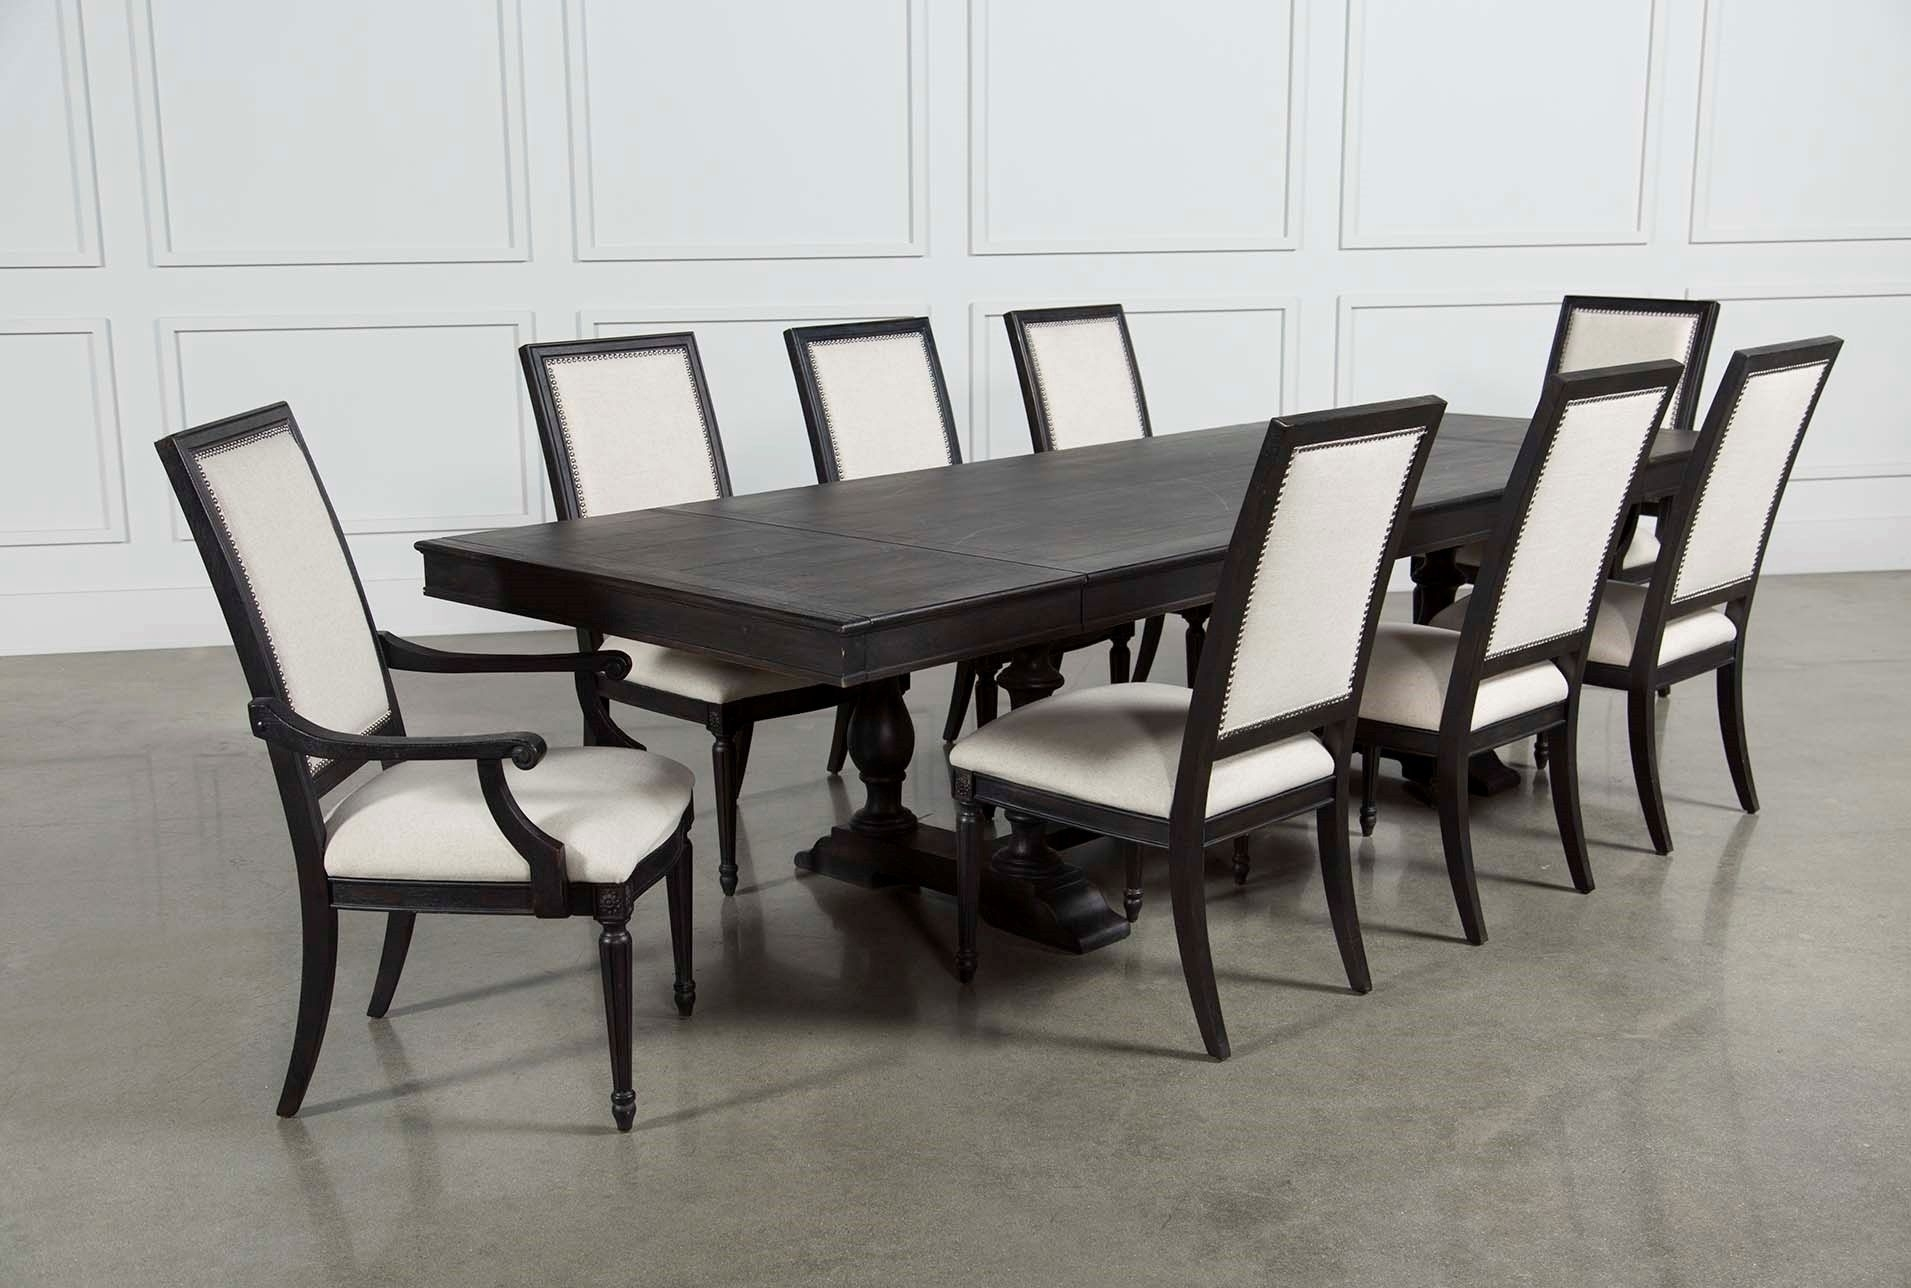 Chapleau 9 Piece Extension Dining Set, Brown | Extensions, Dining Inside Recent Chapleau Ii 9 Piece Extension Dining Tables With Side Chairs (Photo 1 of 20)